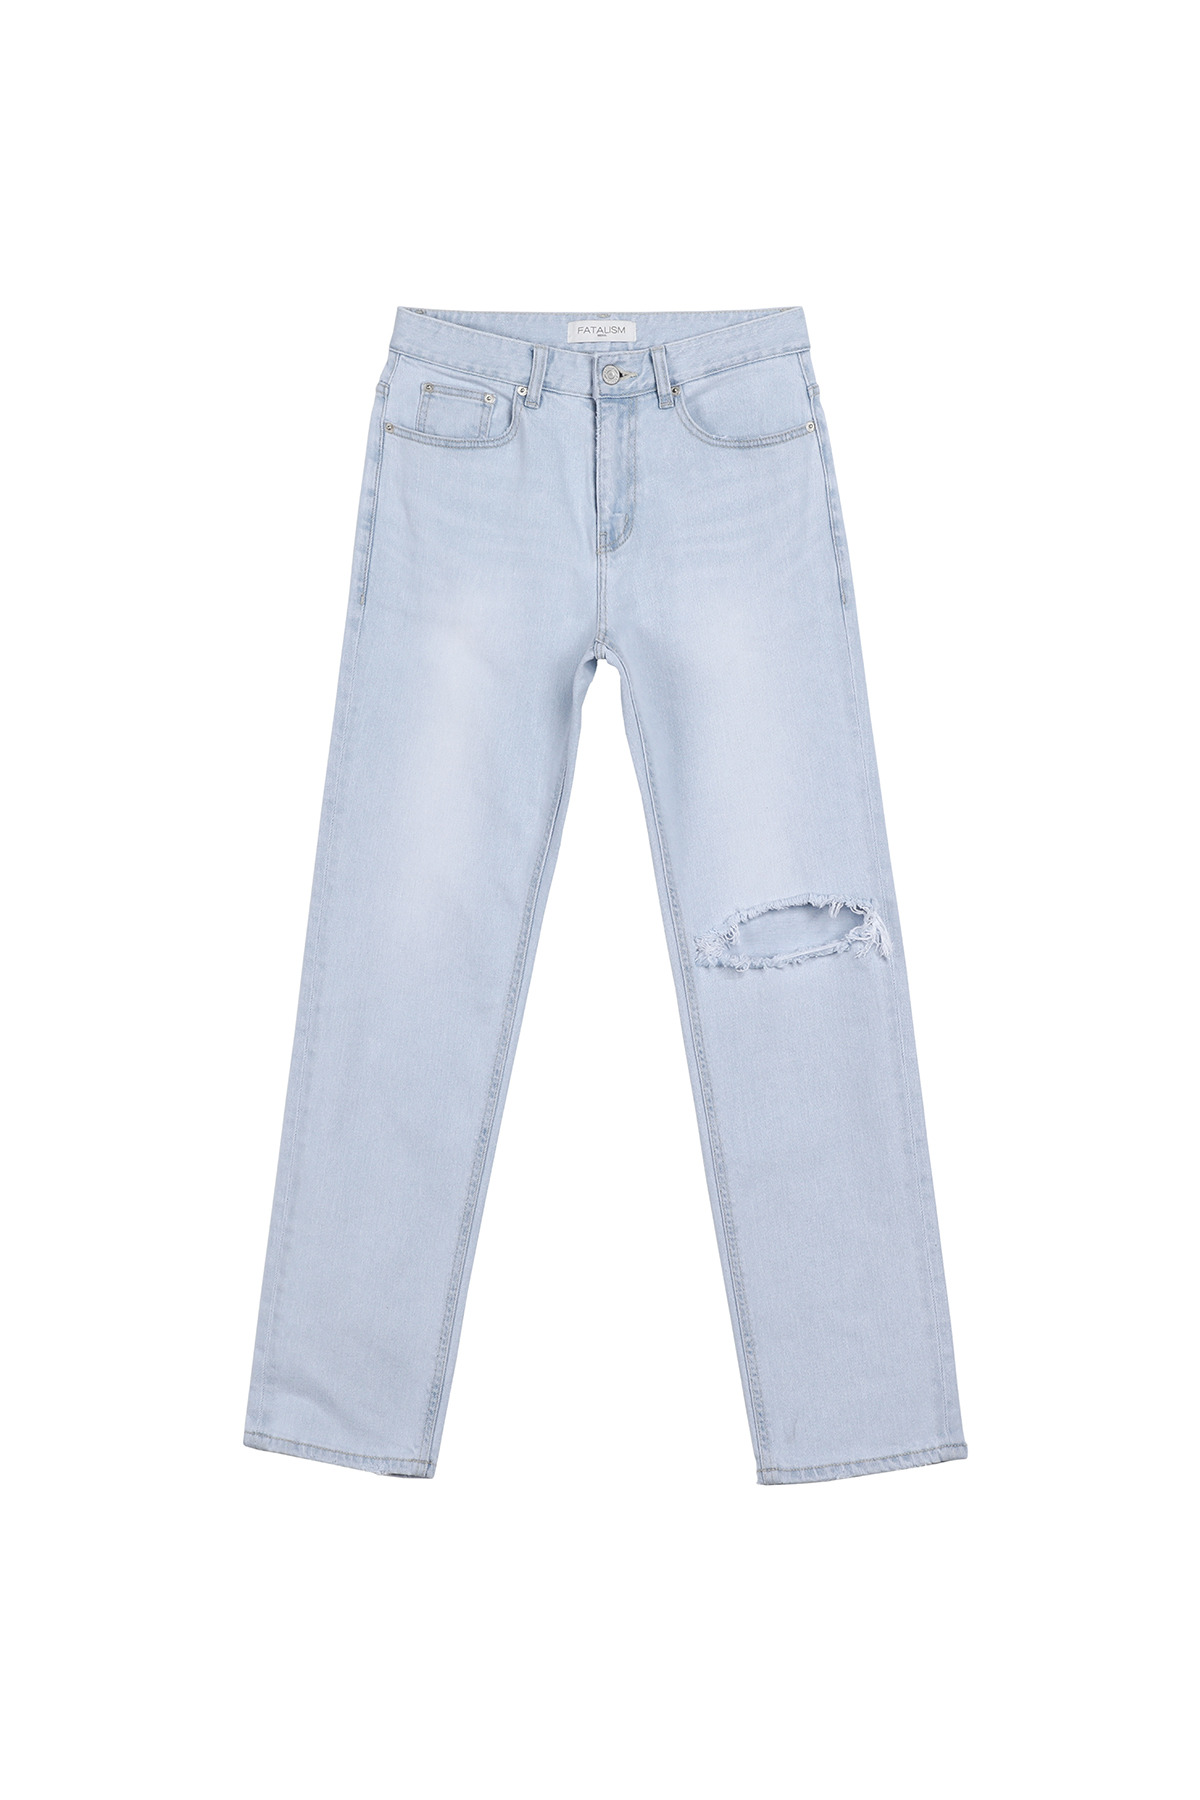 페이탈리즘 #0206 refined ice destroyed straight jeans